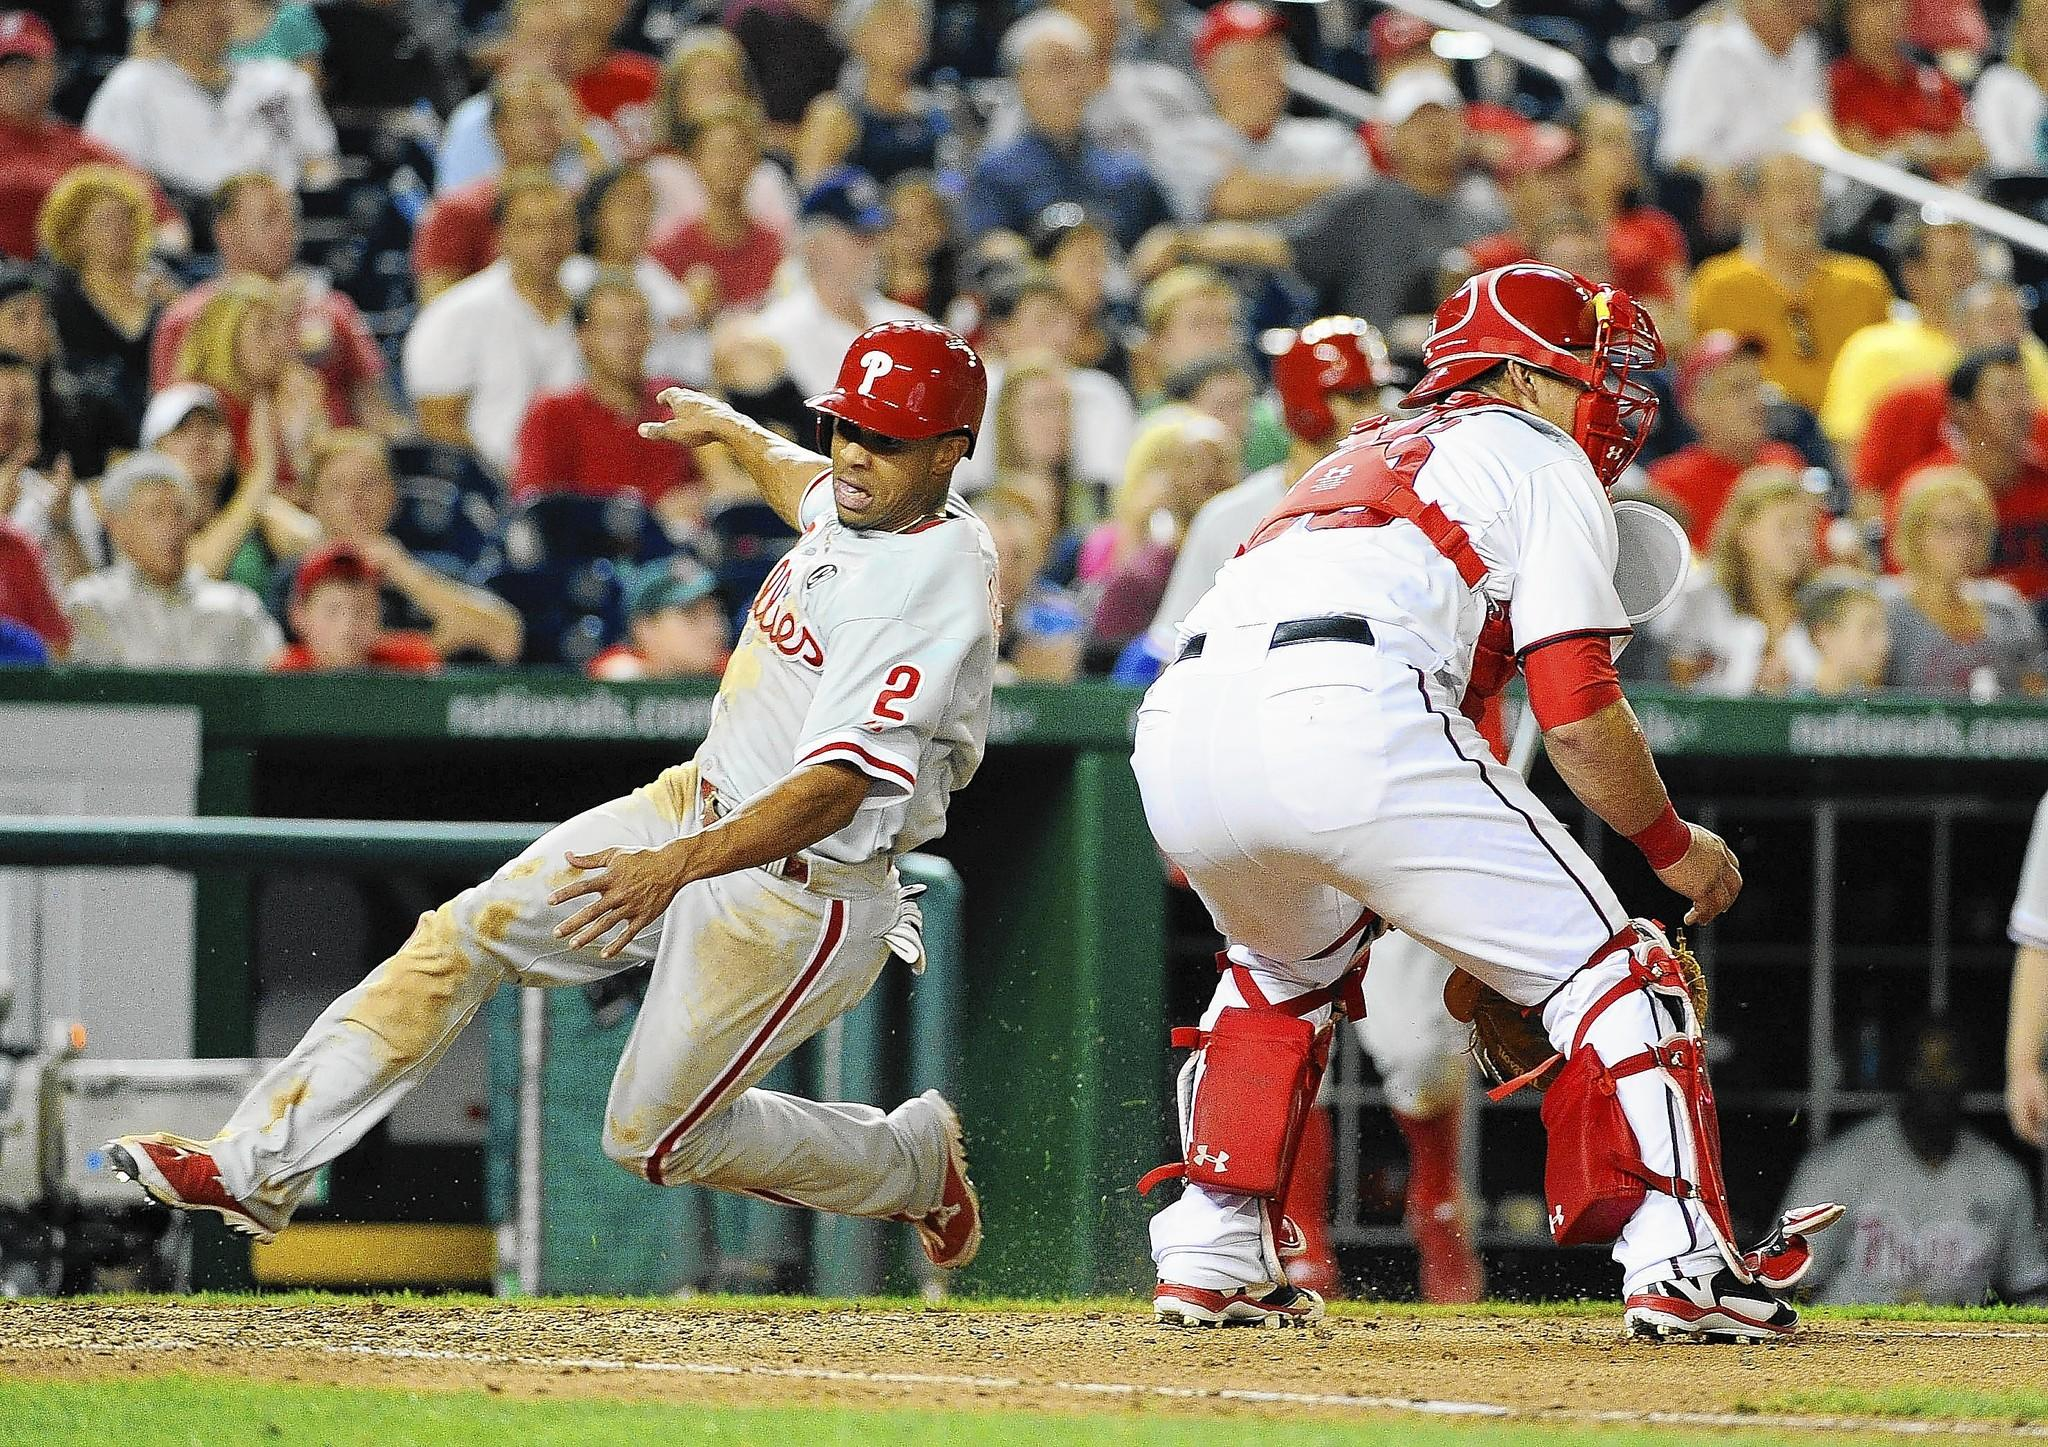 The Phillies' Ben Revere slides safely home as Washington catcher Wilson Ramos waits for the throw.